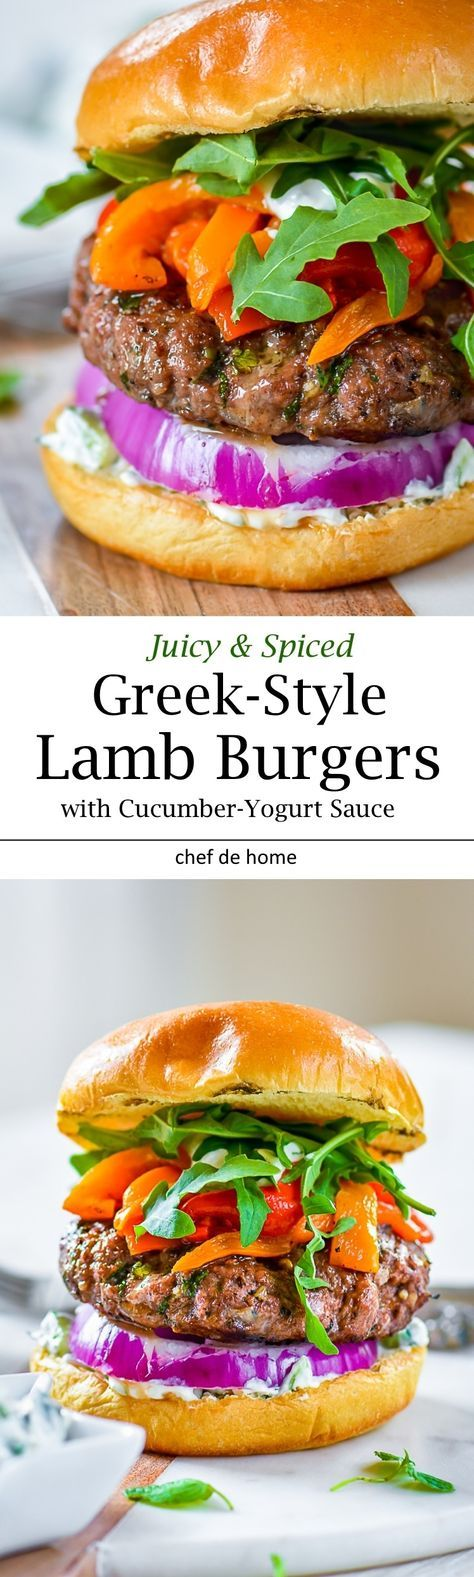 Greek Mint and Lamb Burgers with roasted red peppers, and Cucumber Yogurt Sauce(Keto Burger Recipes)